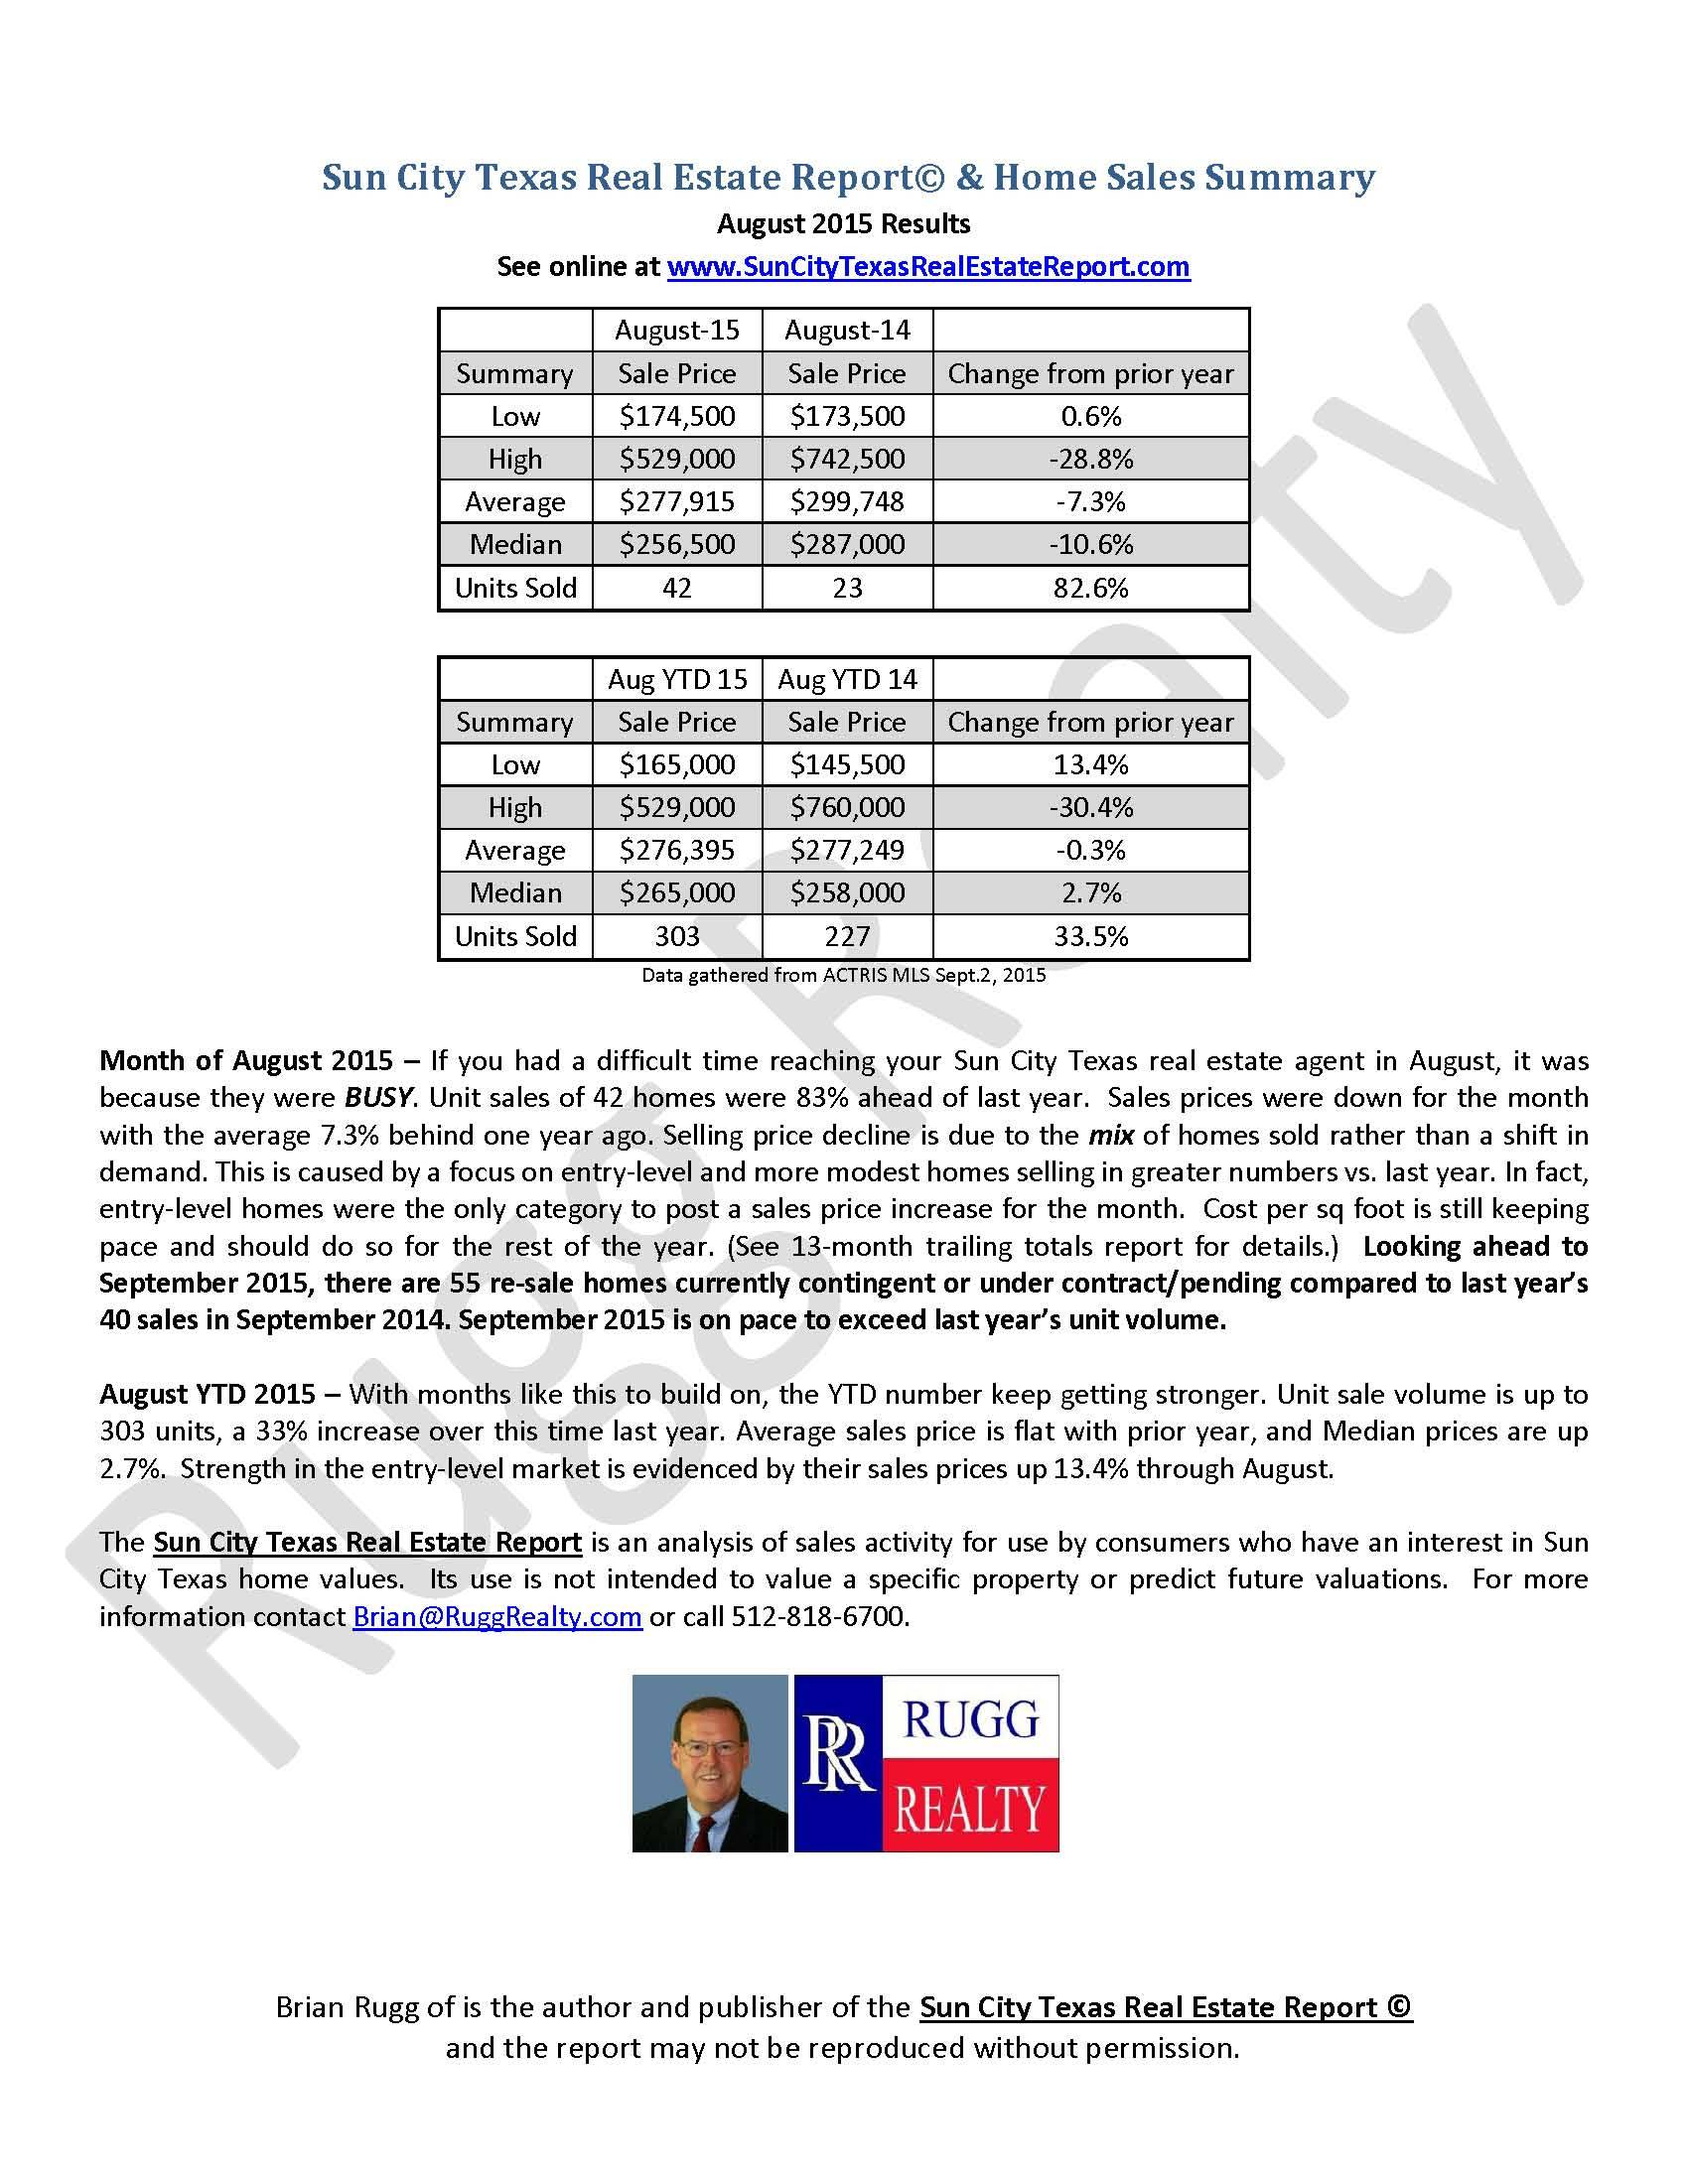 Sun City Texas Real Estate Report & Home Sales Summary August  2015